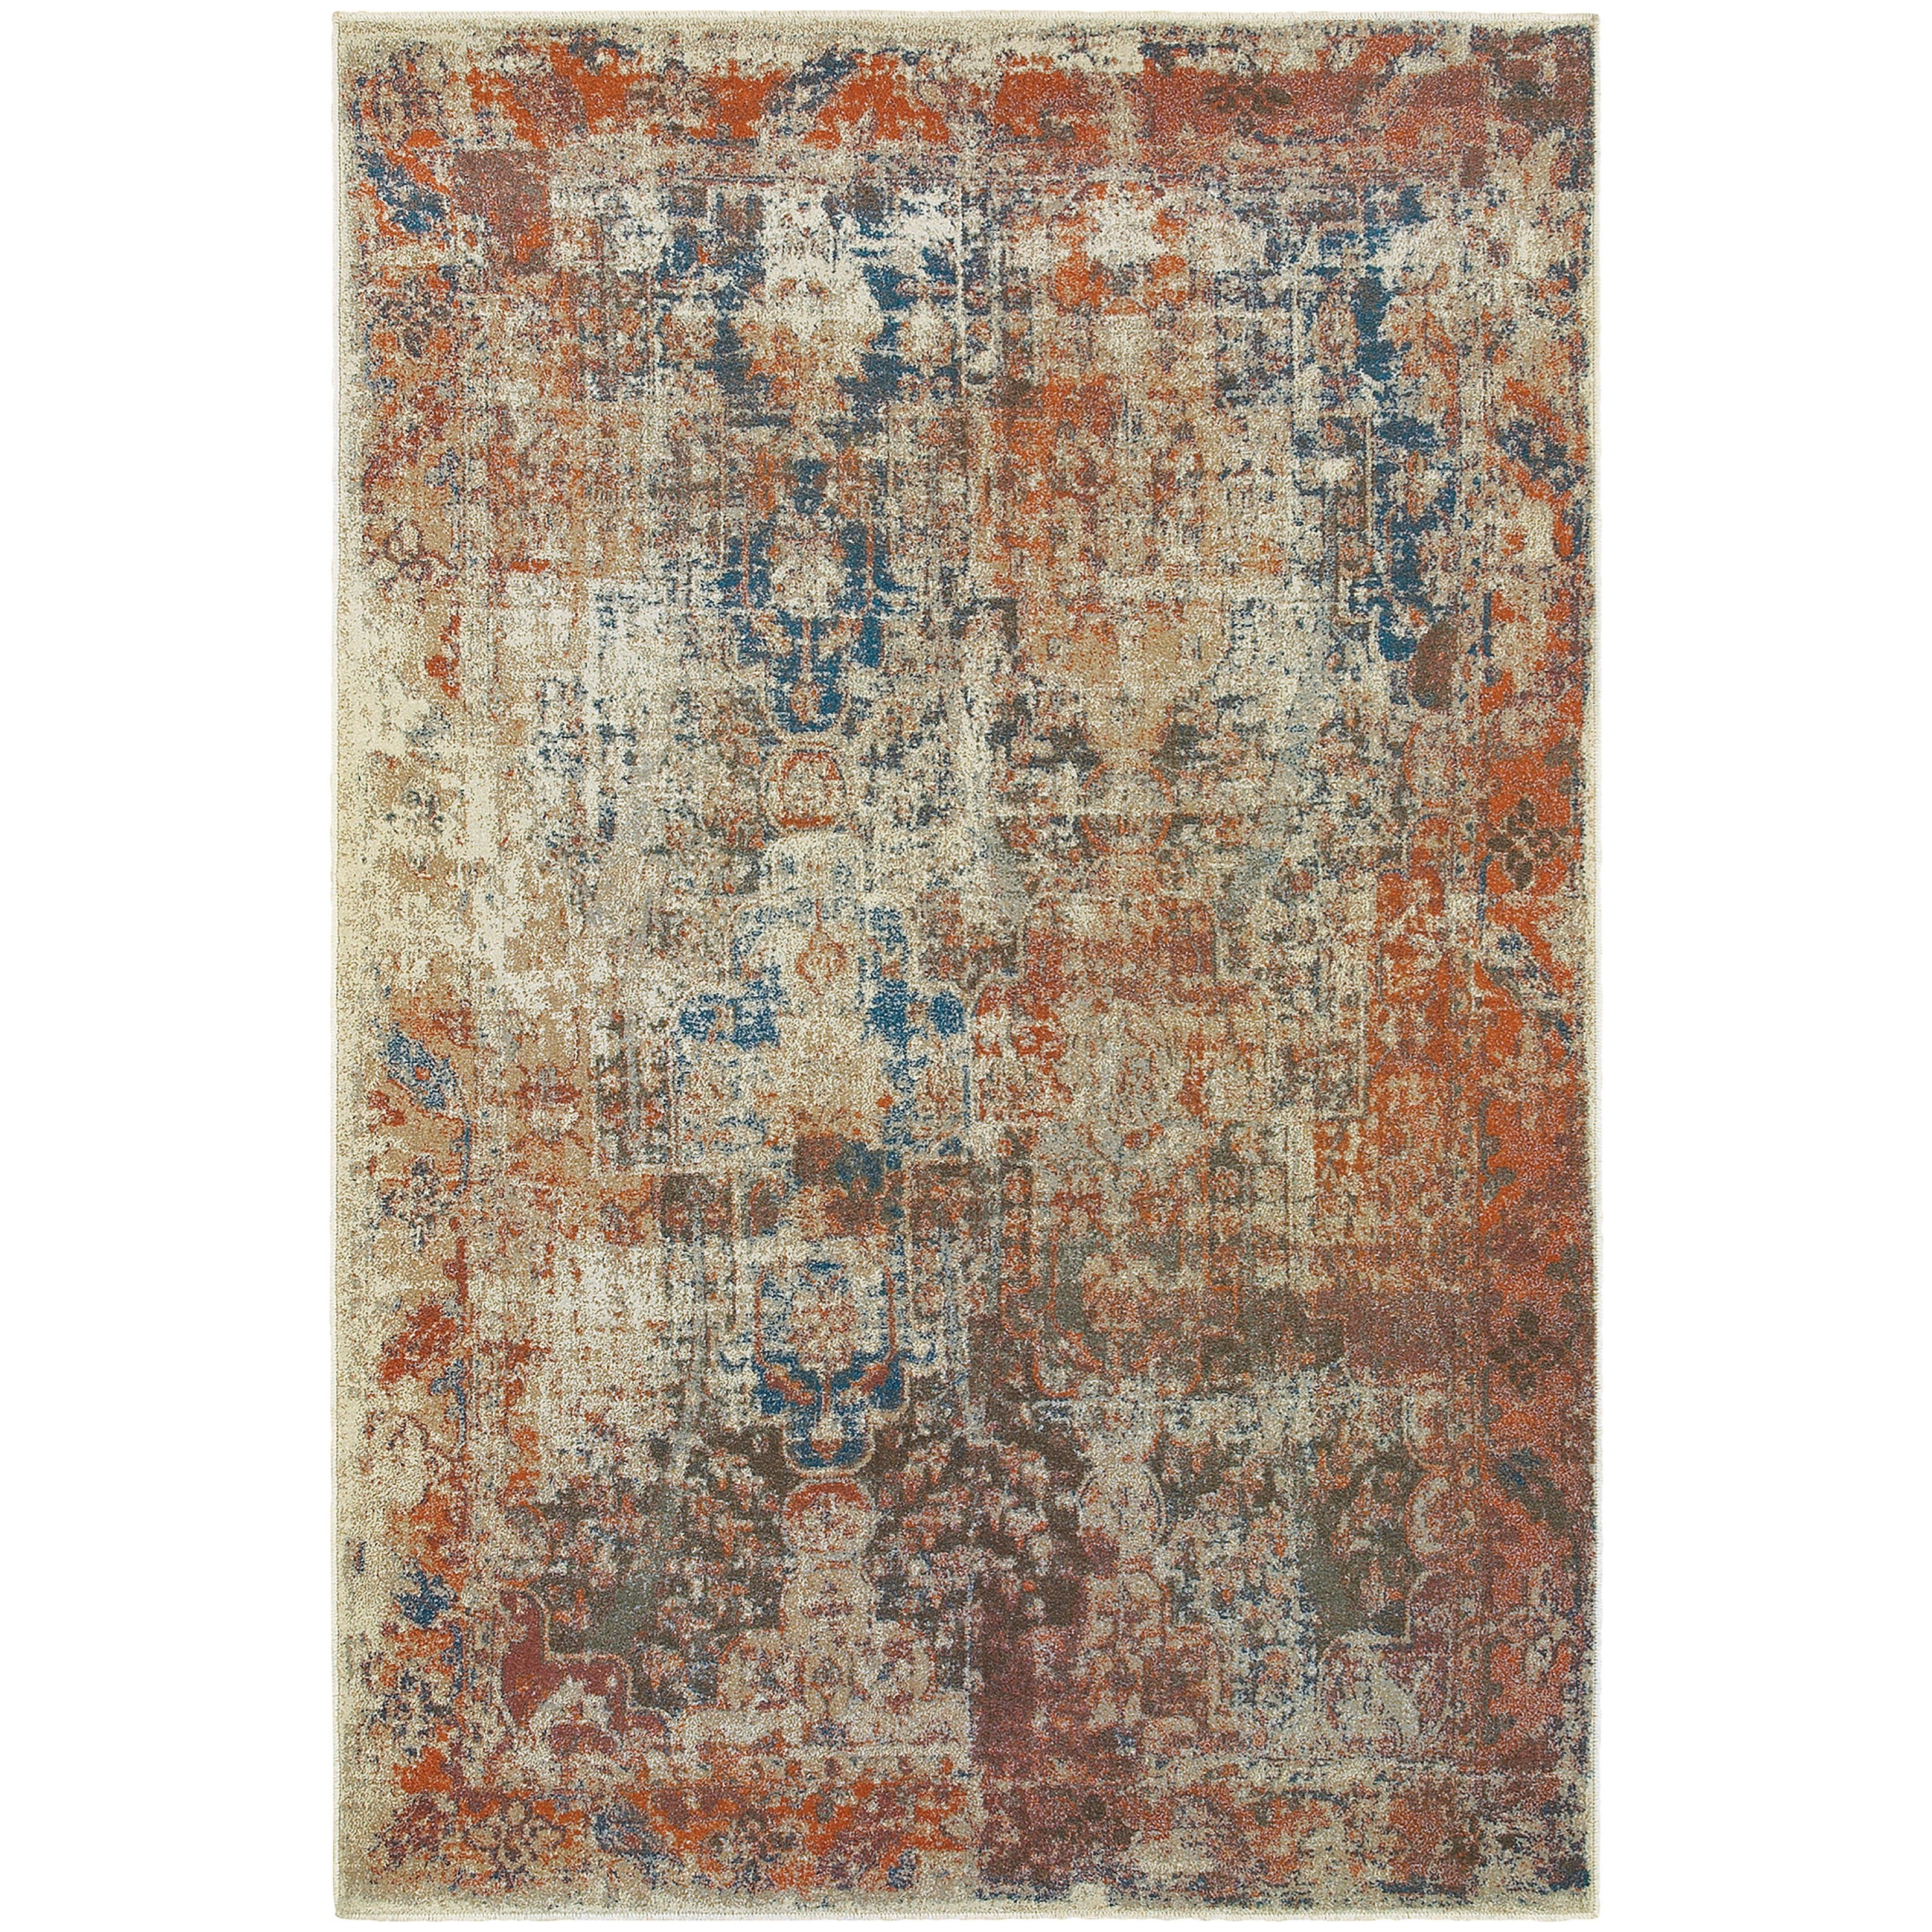 Pasha 8x10 Rug by Oriental Weavers at Red Knot